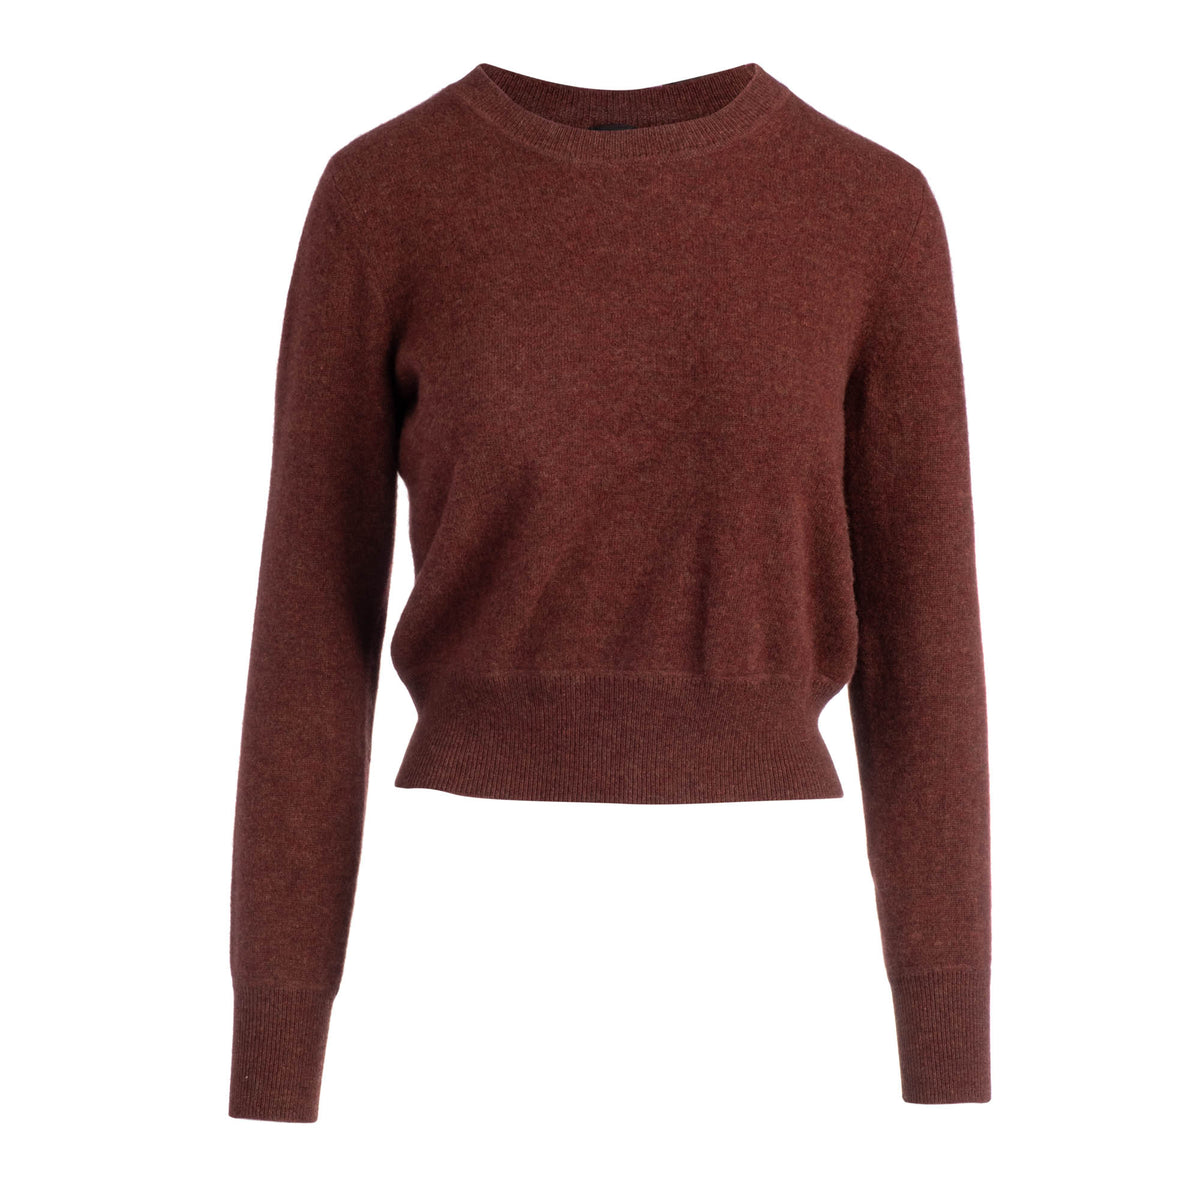 CROPPED CREW PULLOVER - AUTUMN